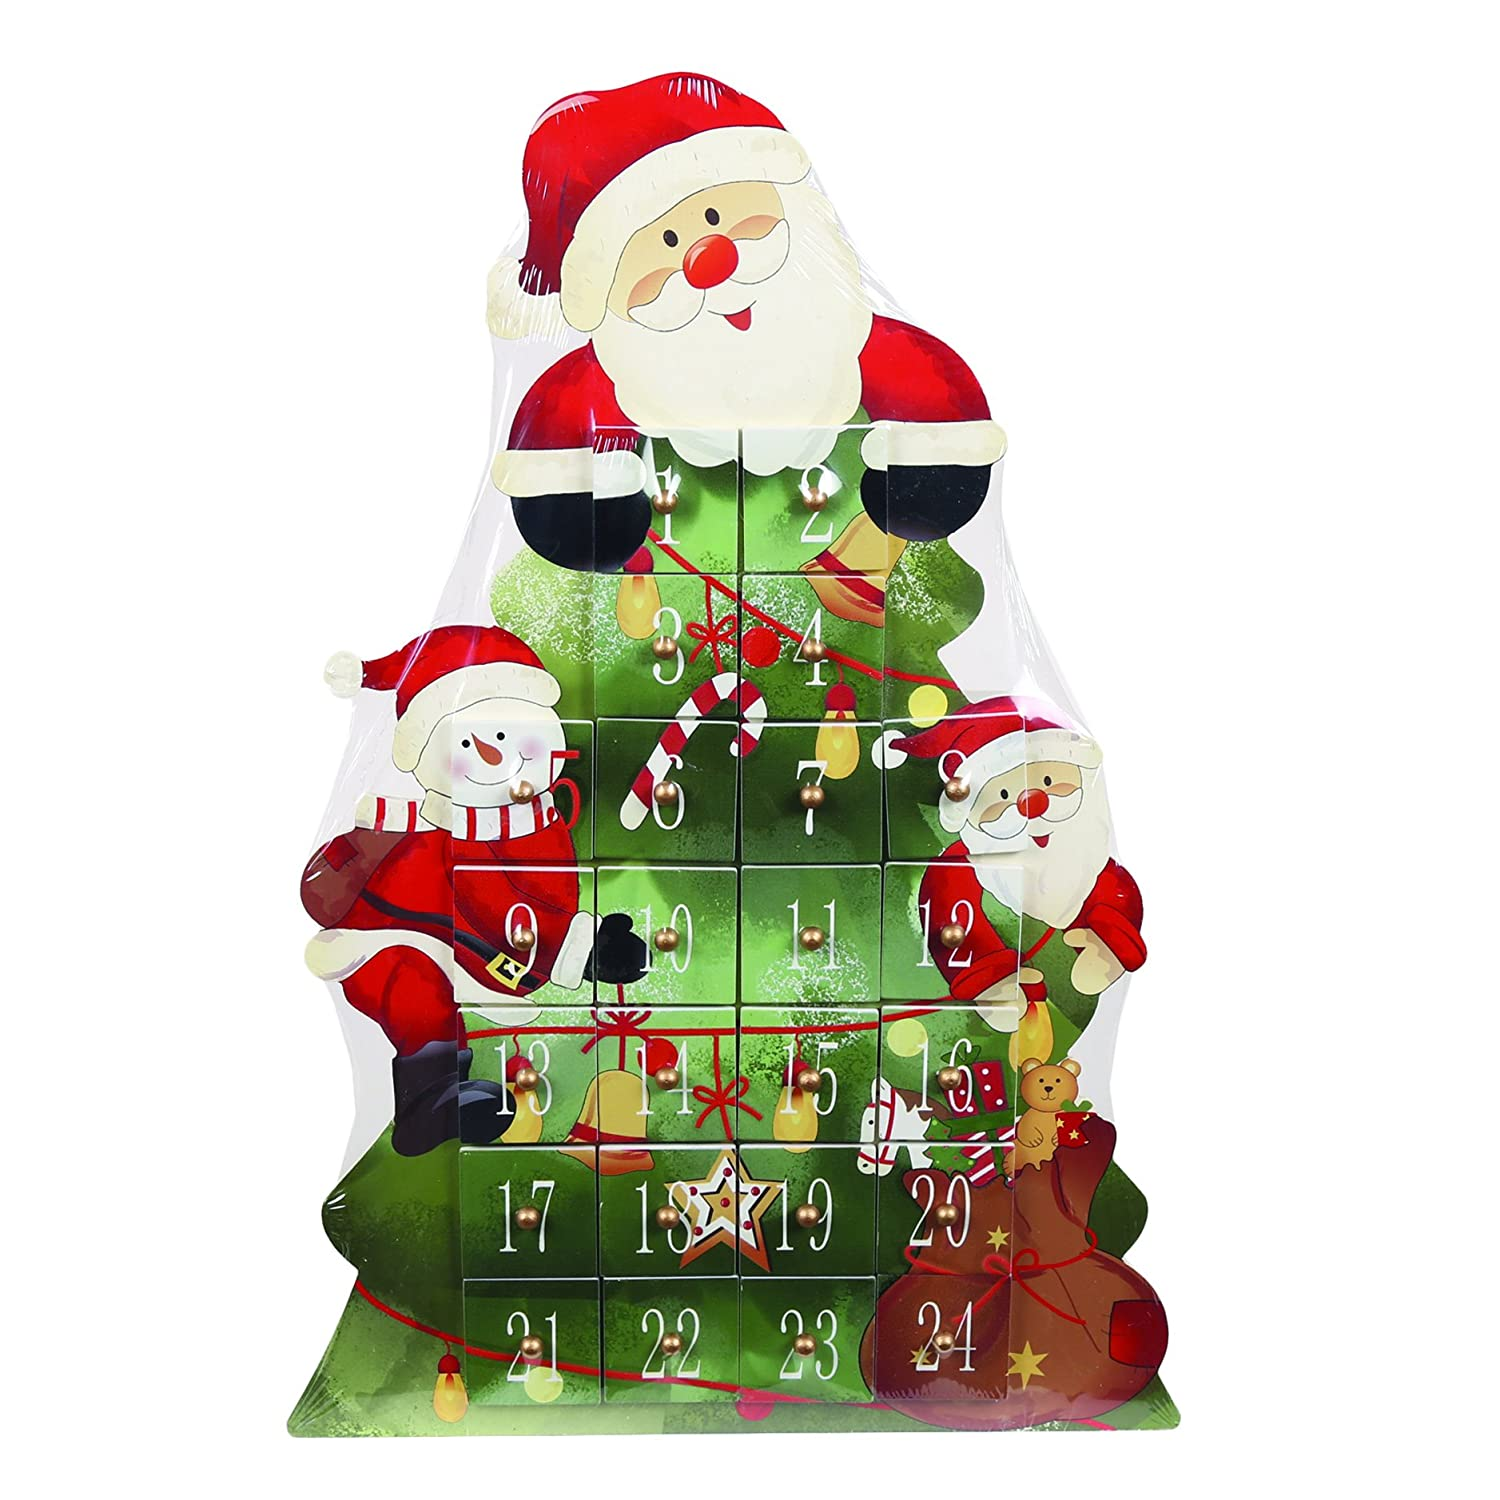 LARGE WOODEN CHRISTMAS SANTA SHAPED FESTIVE XMAS ADVENT CALENDAR 40CM TALL Straits